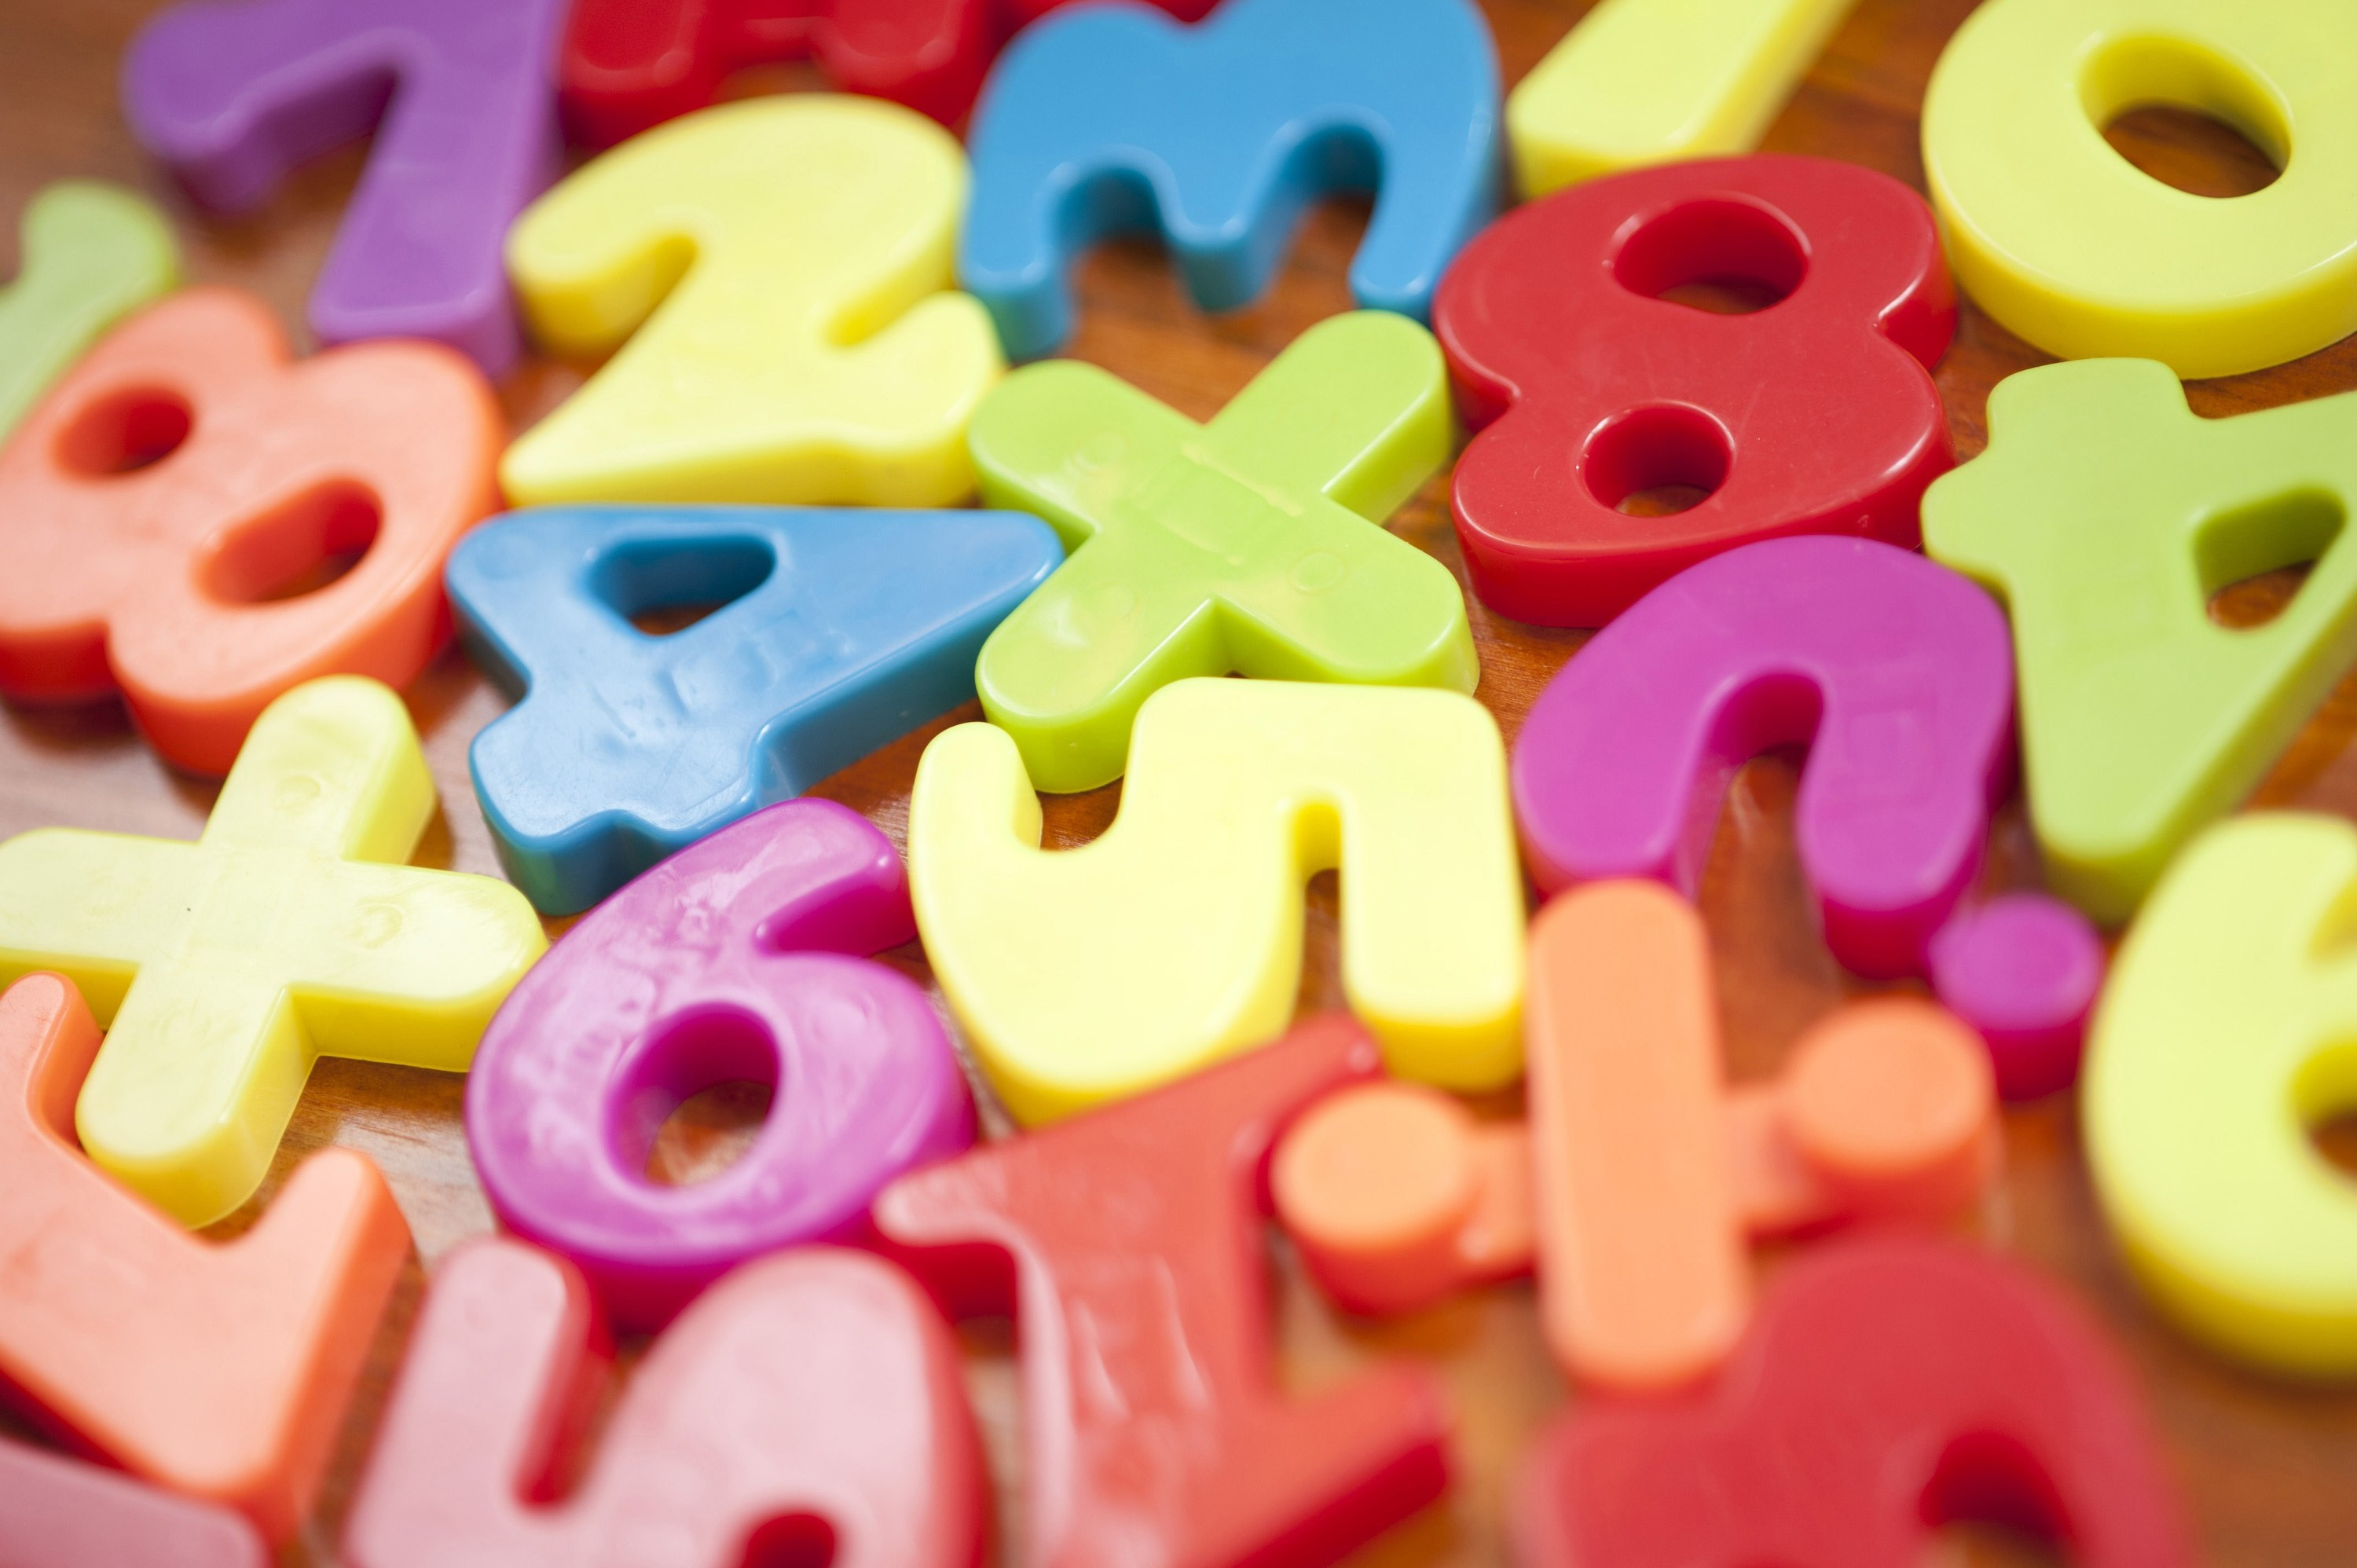 Free image of Colourful toy numbers